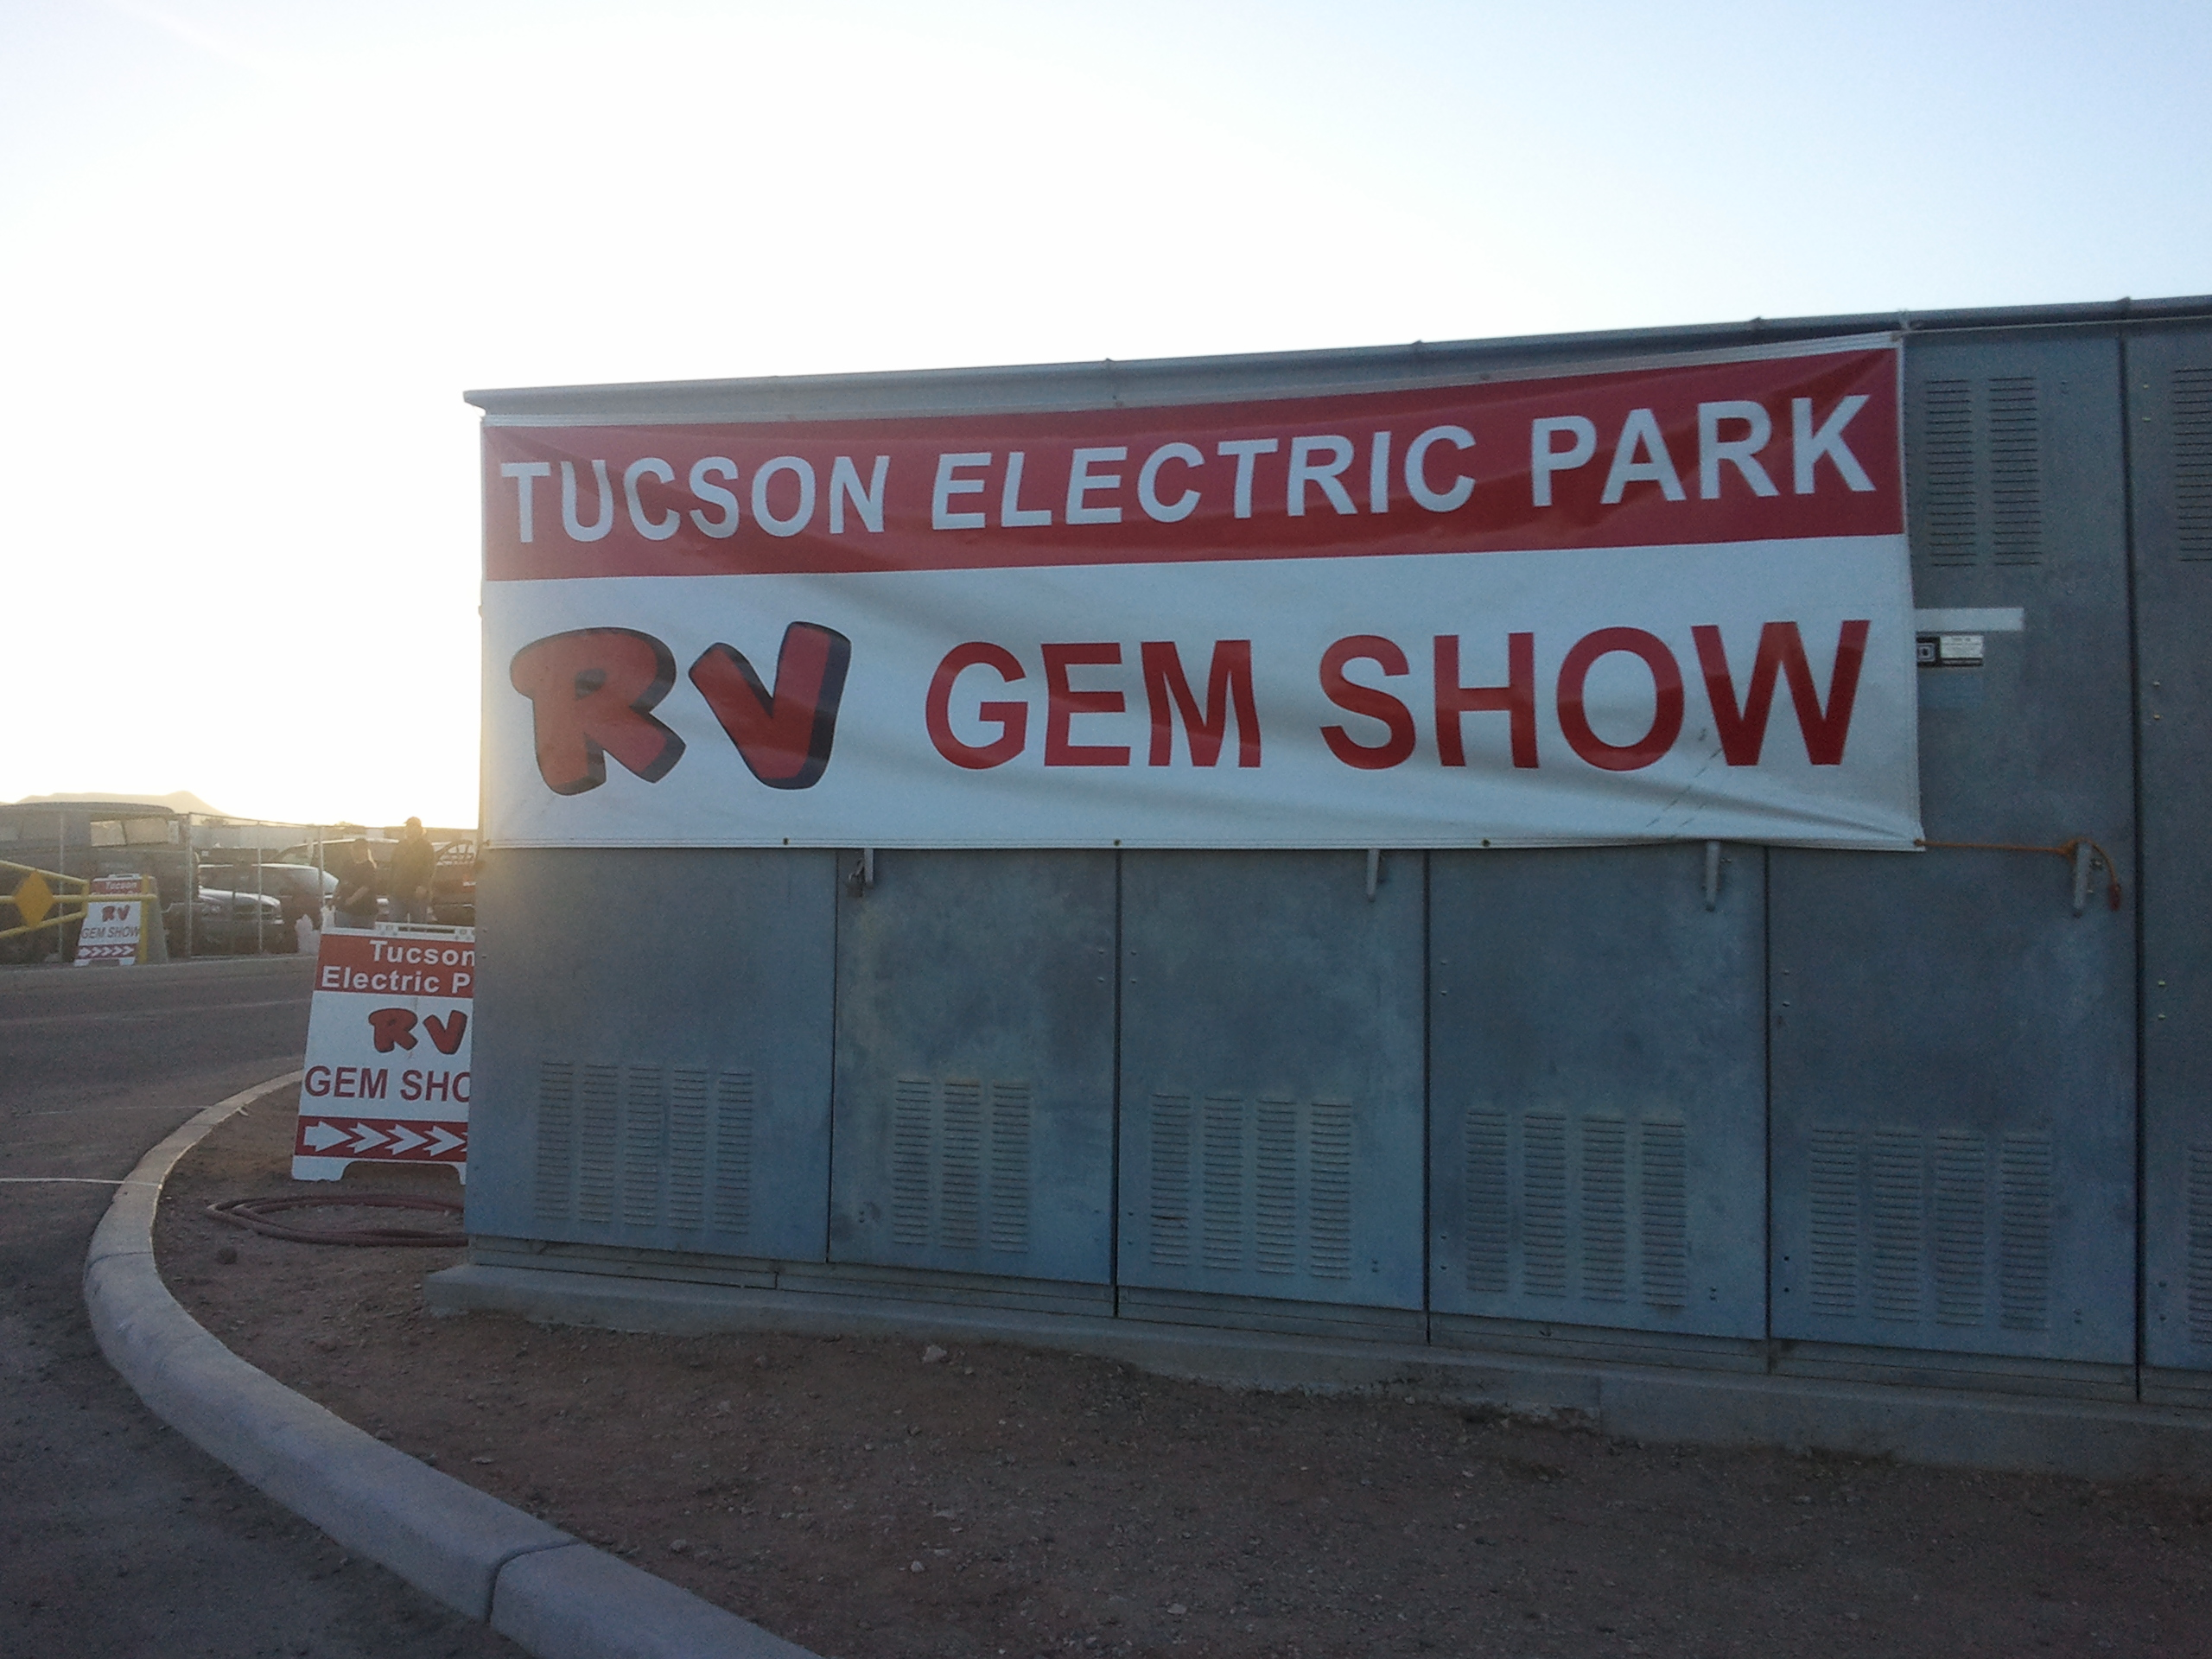 """I'm not sure what makes it an """"RV"""" gem show"""